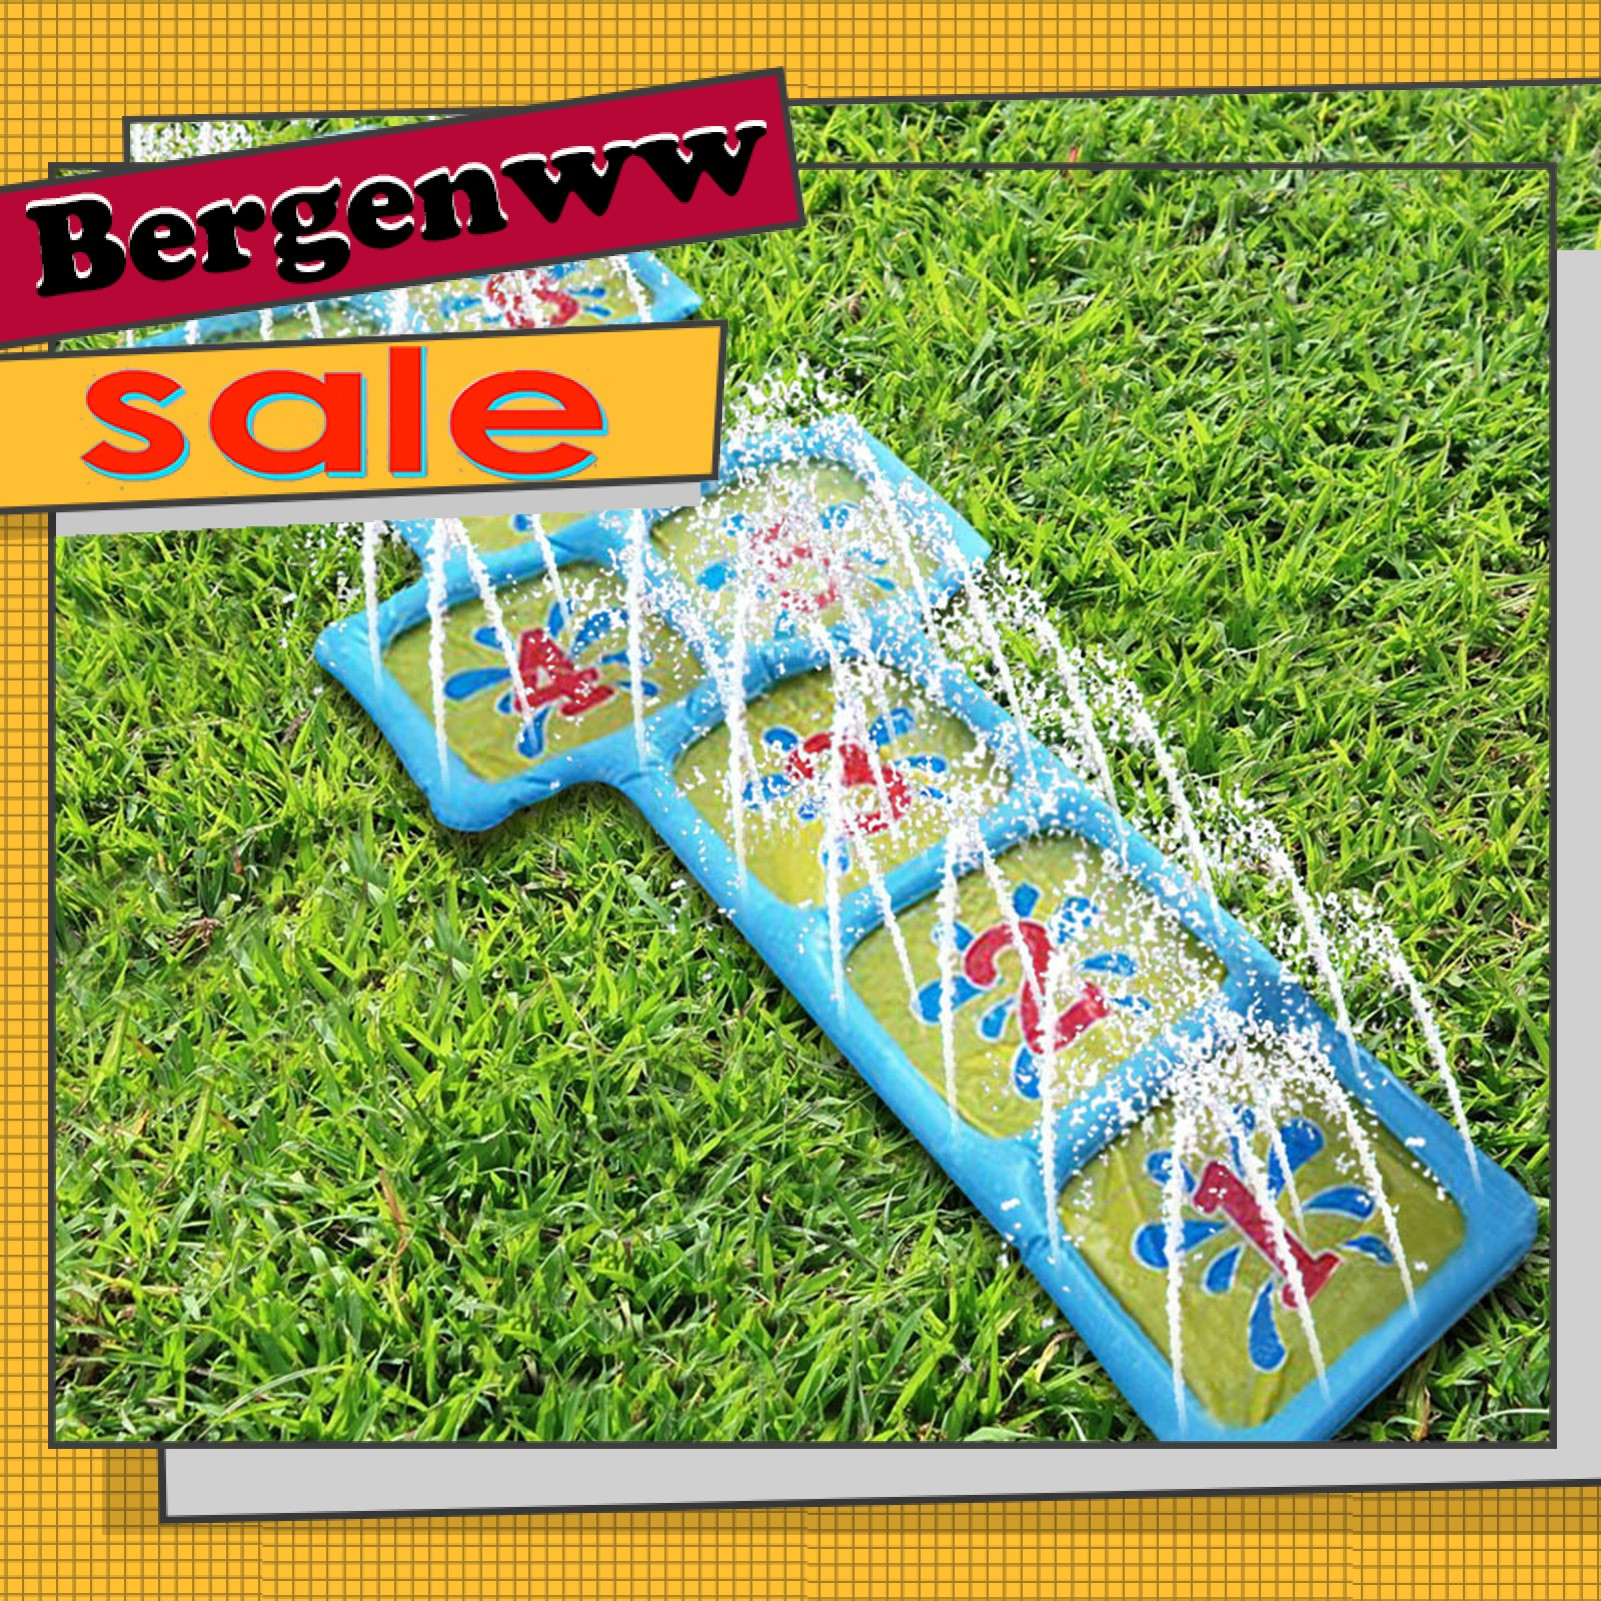 Bergenww_my Toy PVC Water Sprinkler Pad Reusable Kids Spray Water Cushion Easy to Use for Home